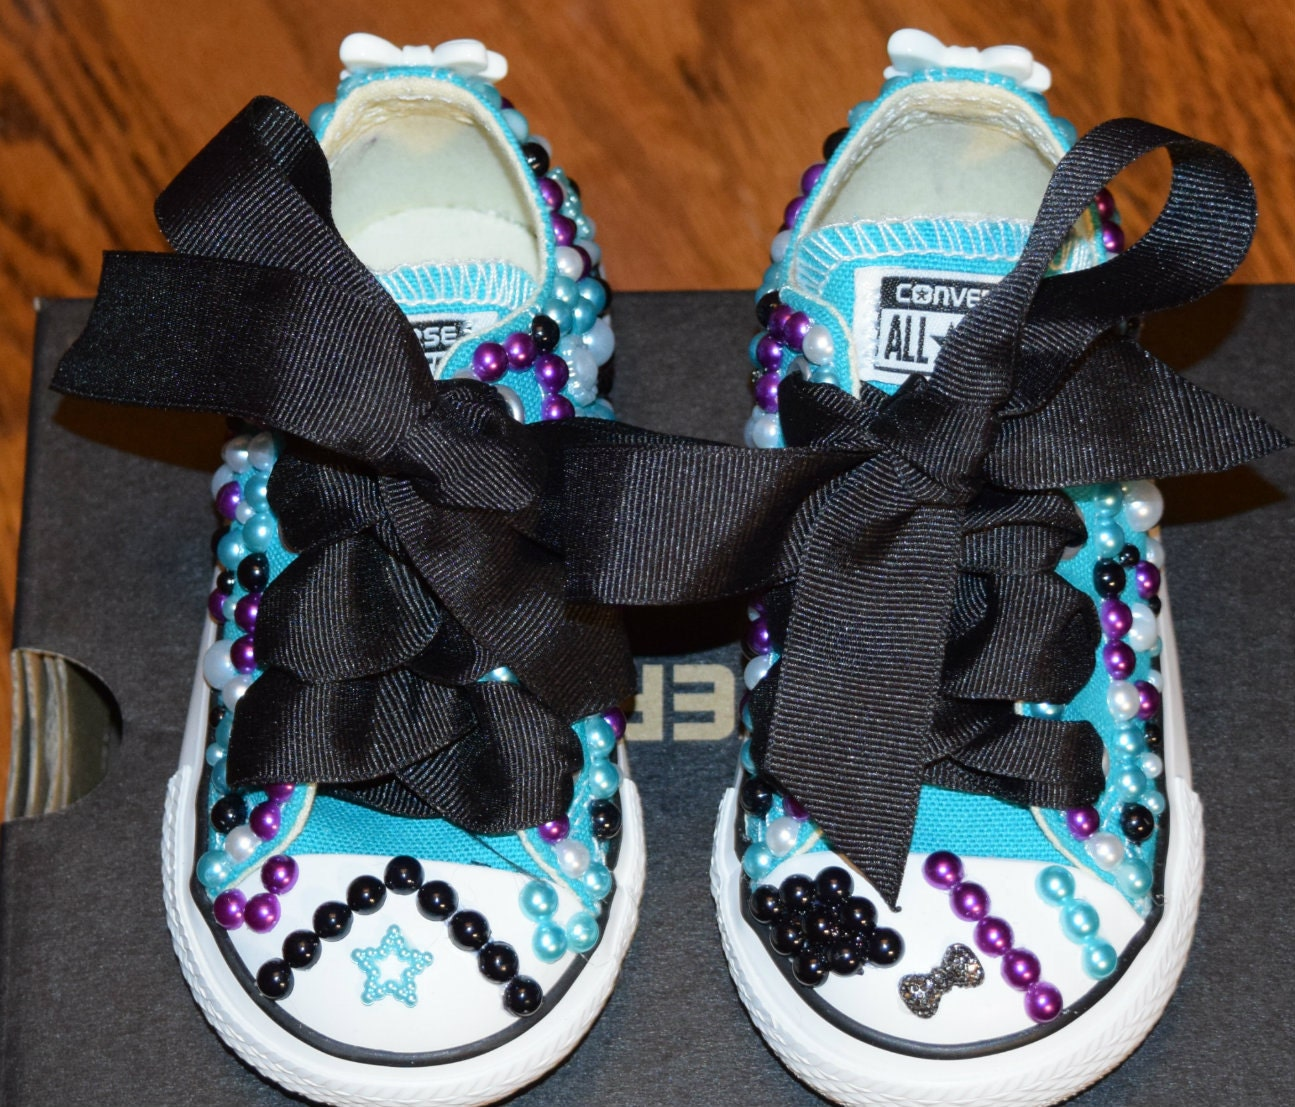 Teal Purple Black Bling Pearl Toddler Girls Size 6 Converse